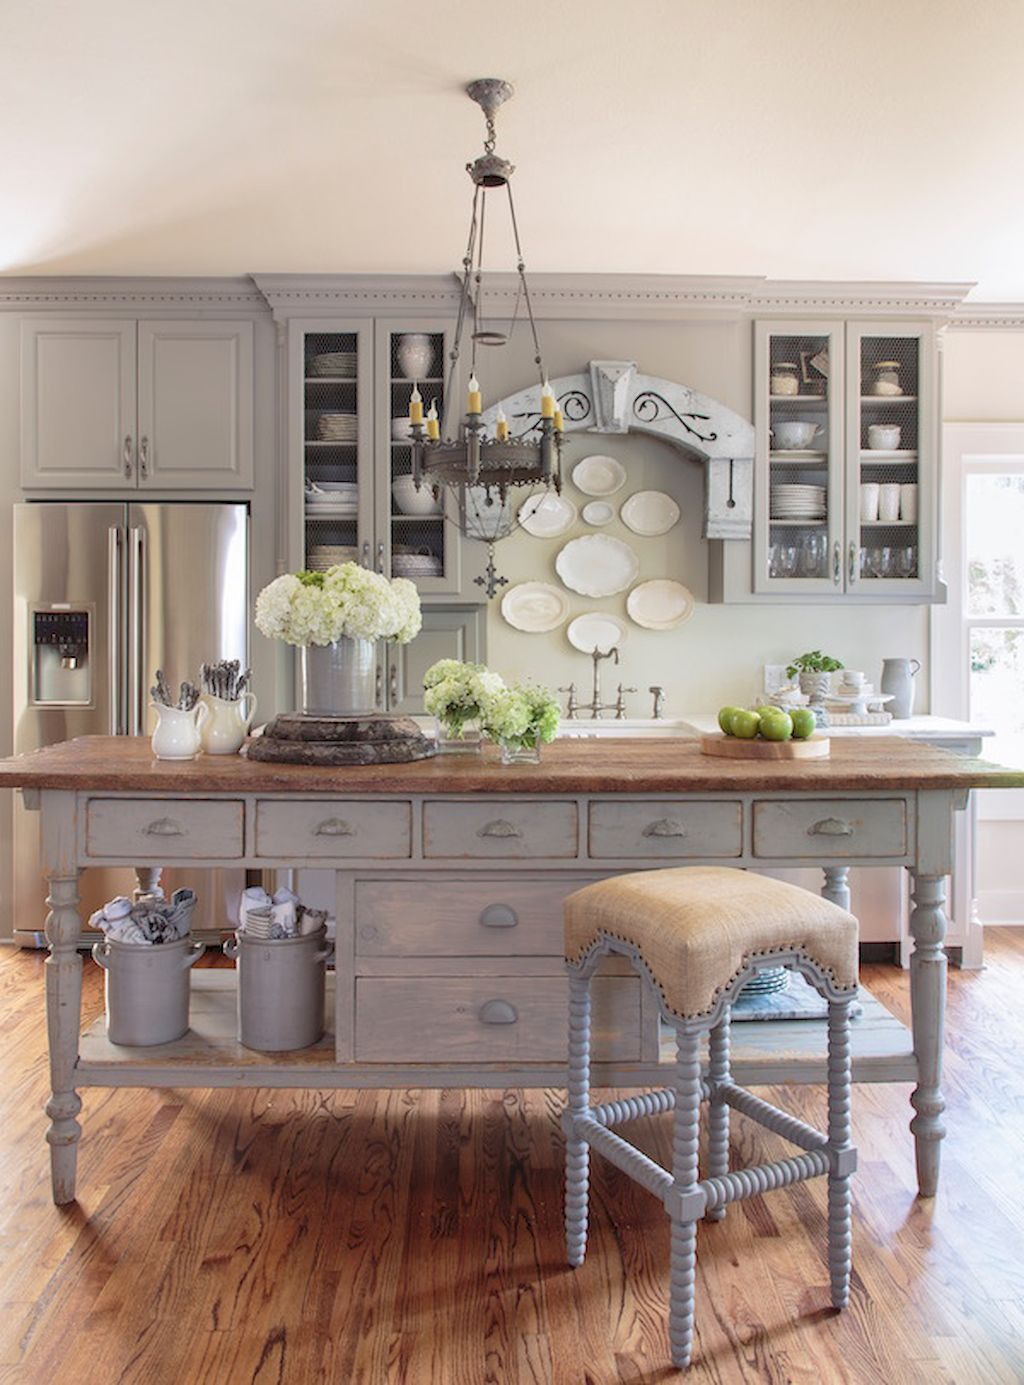 French Country Style Kitchen Decorating Ideas French country